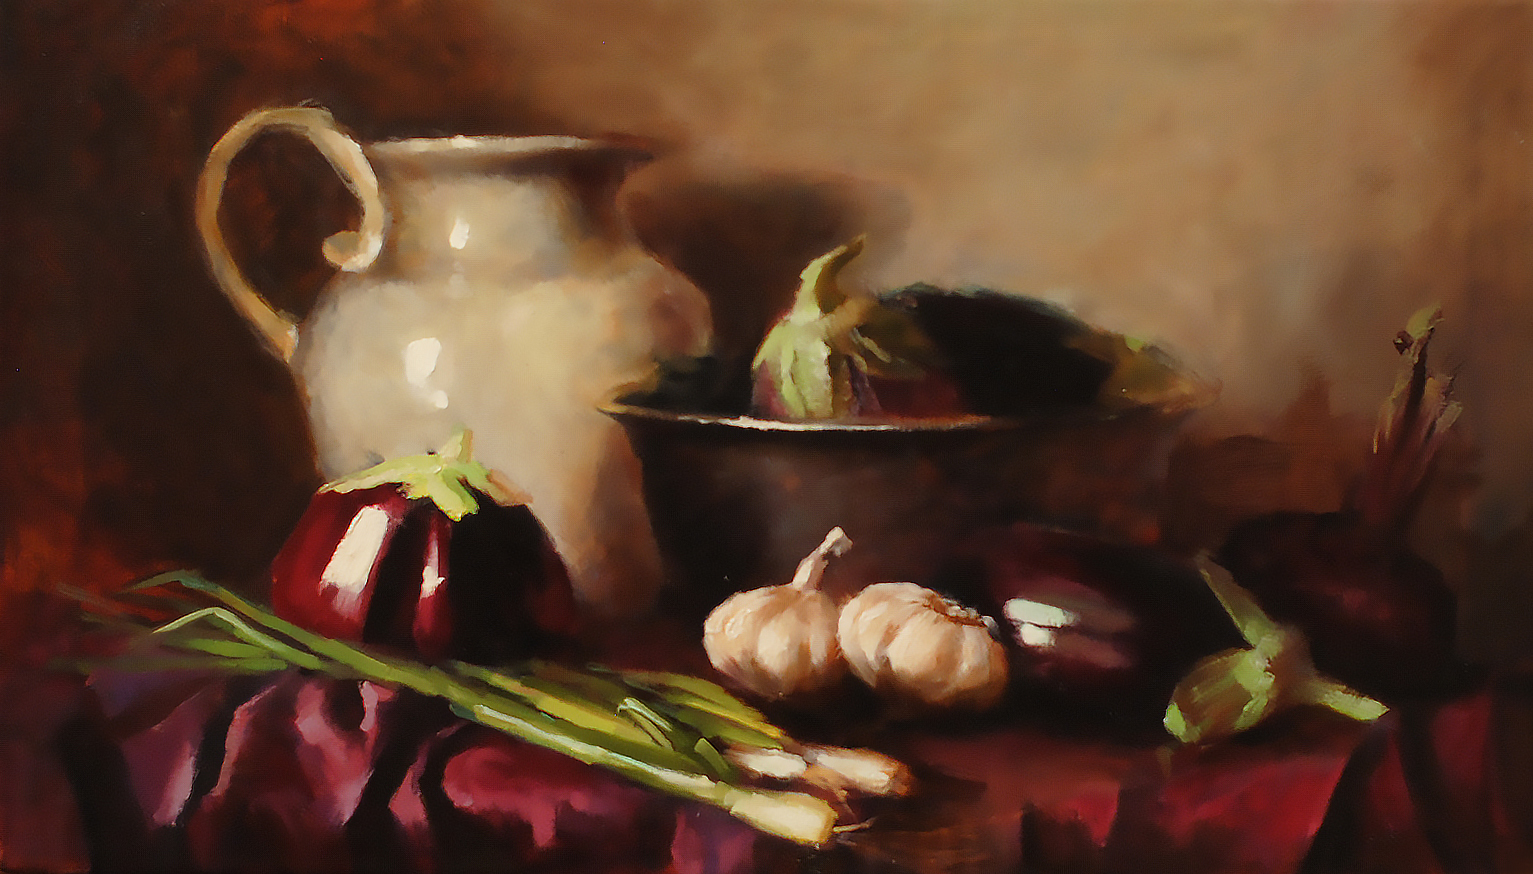 The eggplants still-life